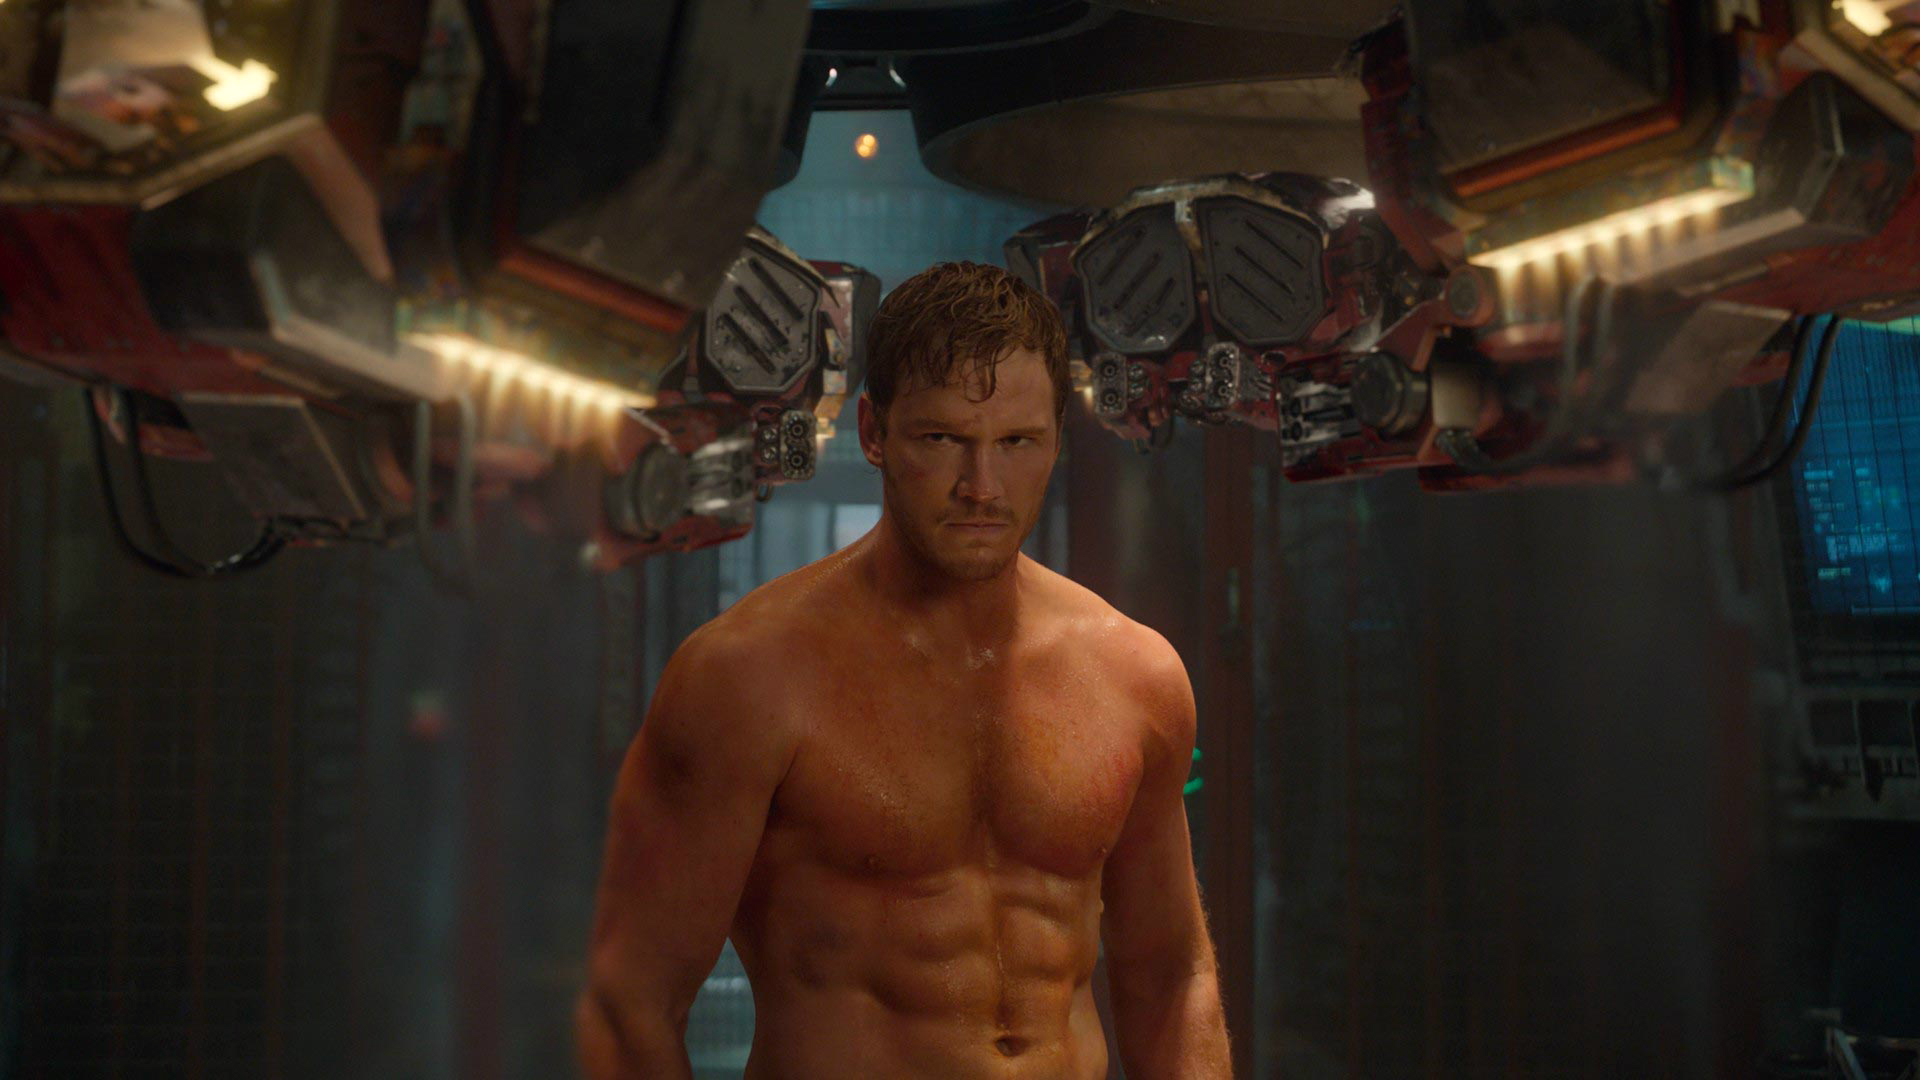 star lord / peter quill (chris pratt) in guardians of the galaxy movie